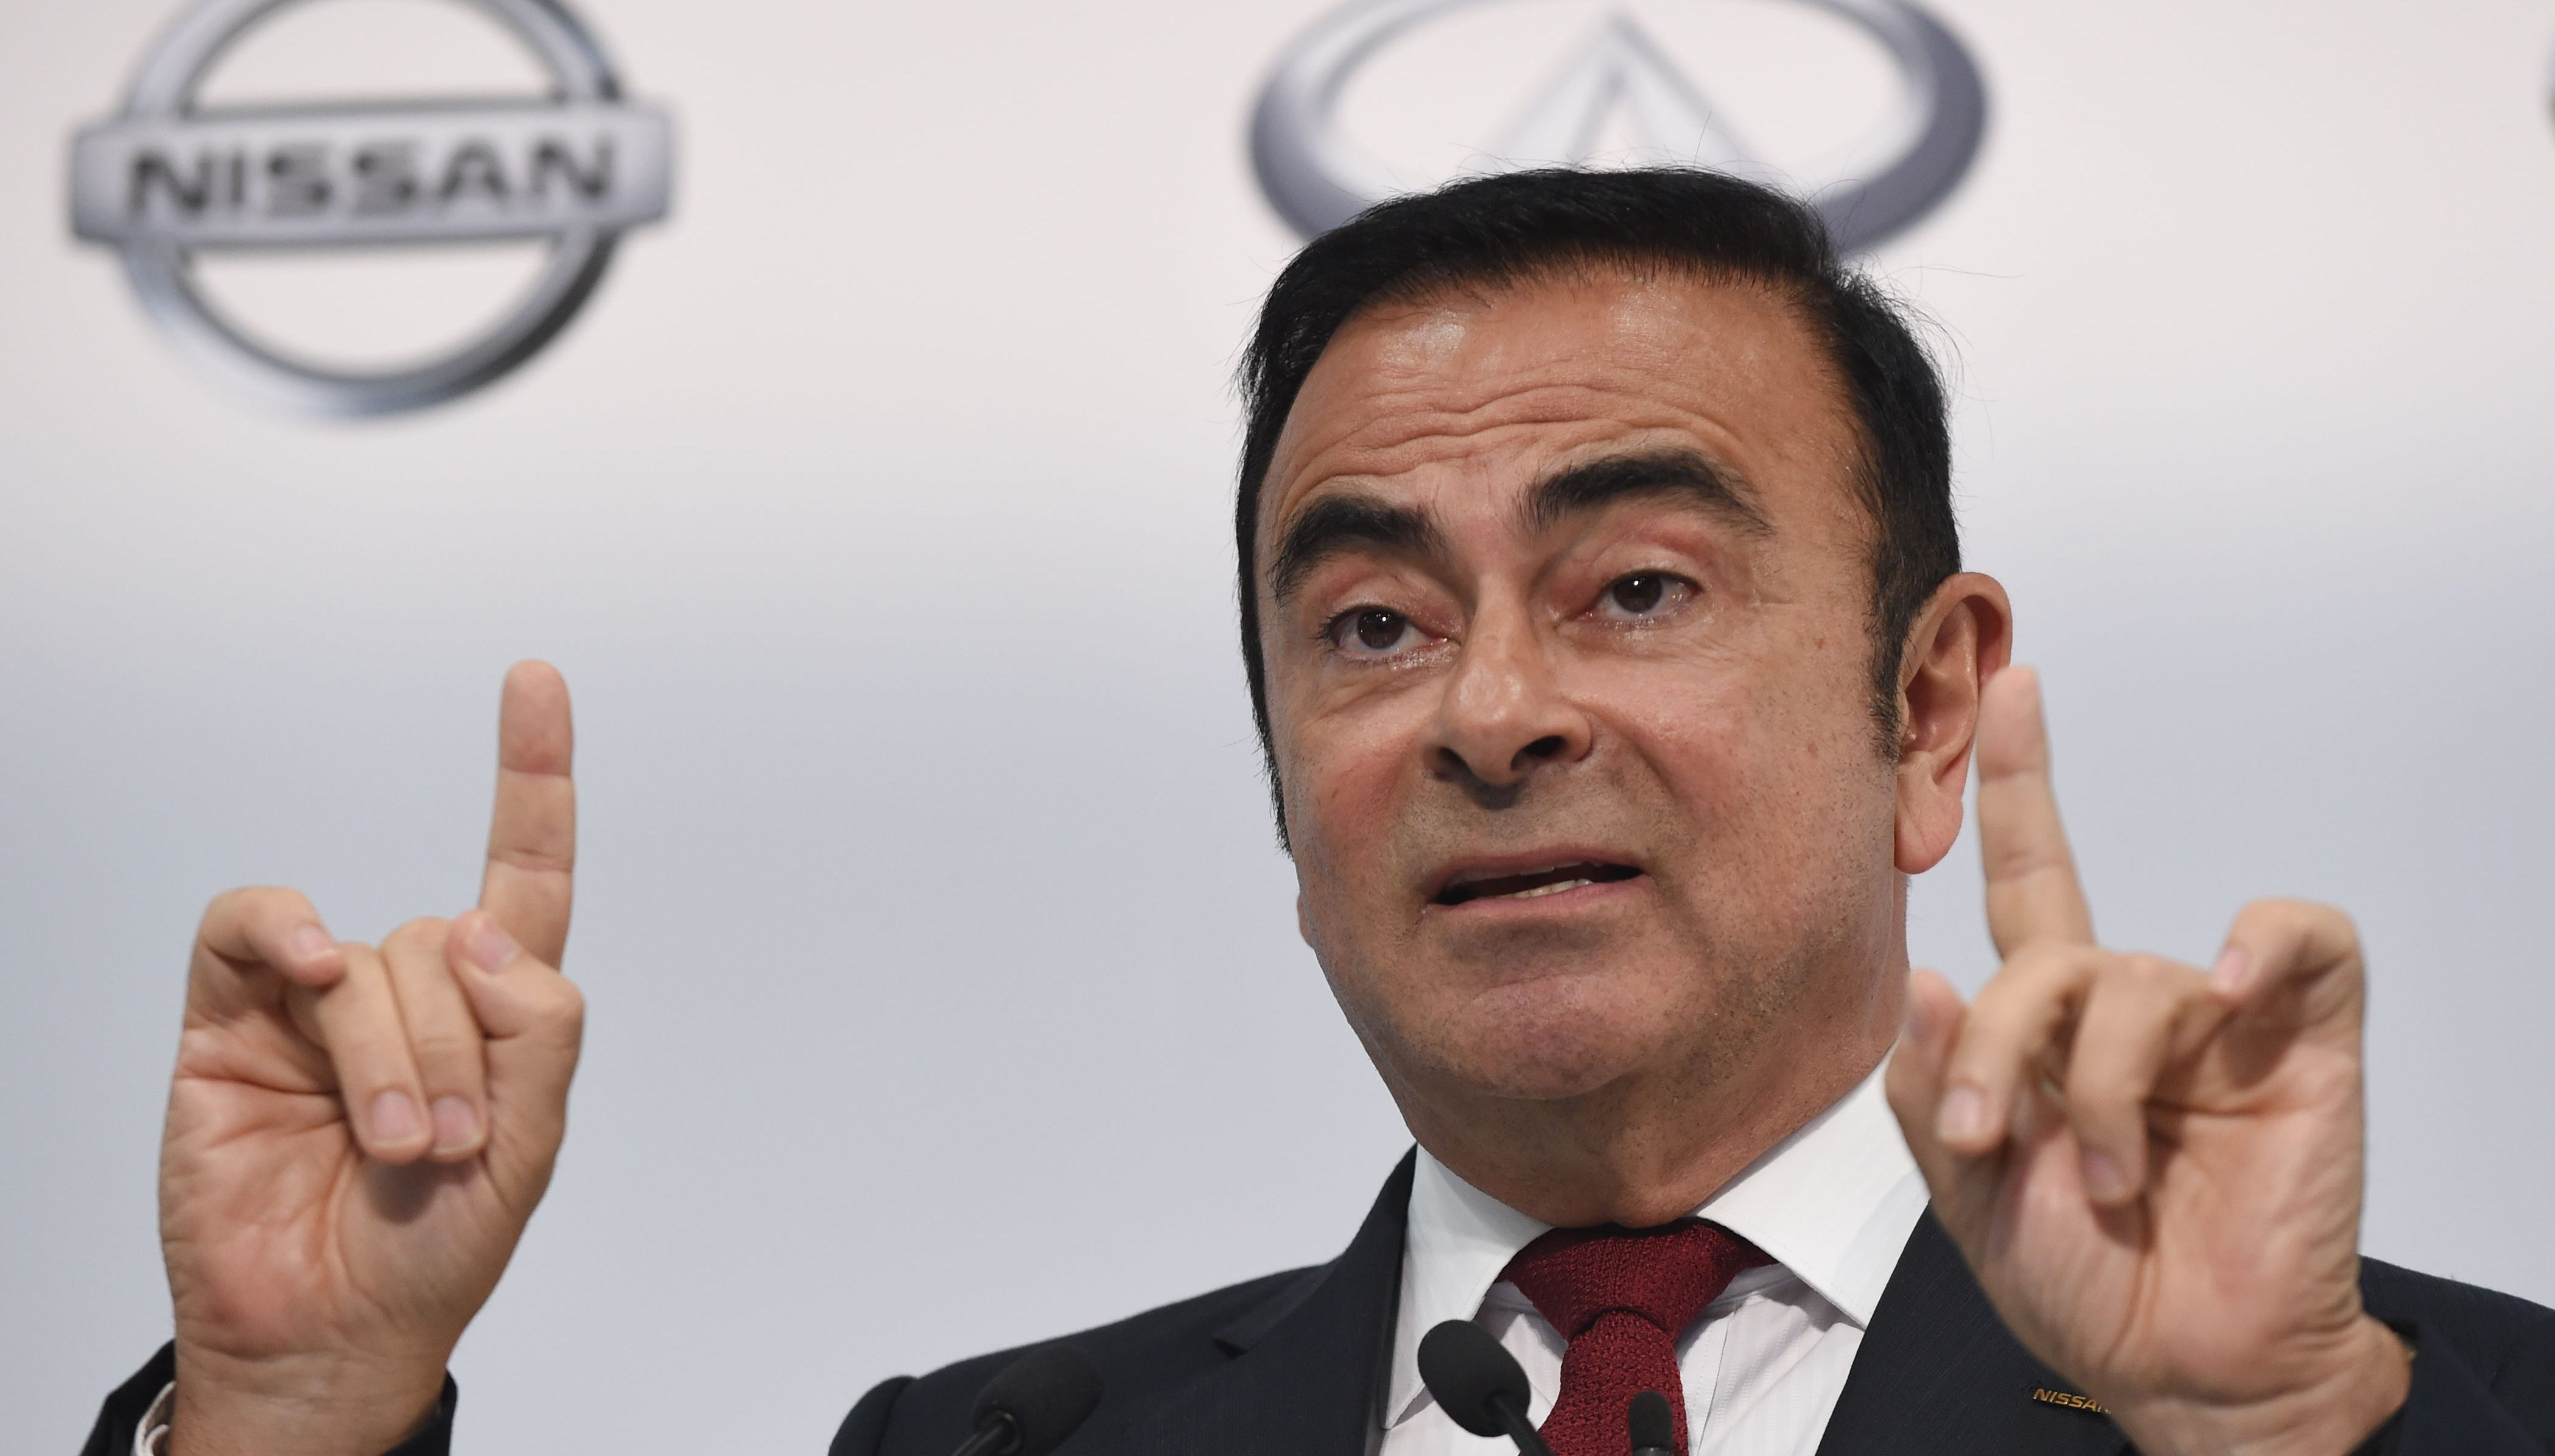 (FILES) This file photo taken in 2015 shows Nissan Motors chairman and CEO Carlos Ghosn speaking during the company's financial results press conference in Yokohama. Japanese prosecutors were expected to arrest Carlos Ghosn, head of the Renault-Nissan-Mitsubishi alliance, on suspicion of false income reports, local media reported Monday.